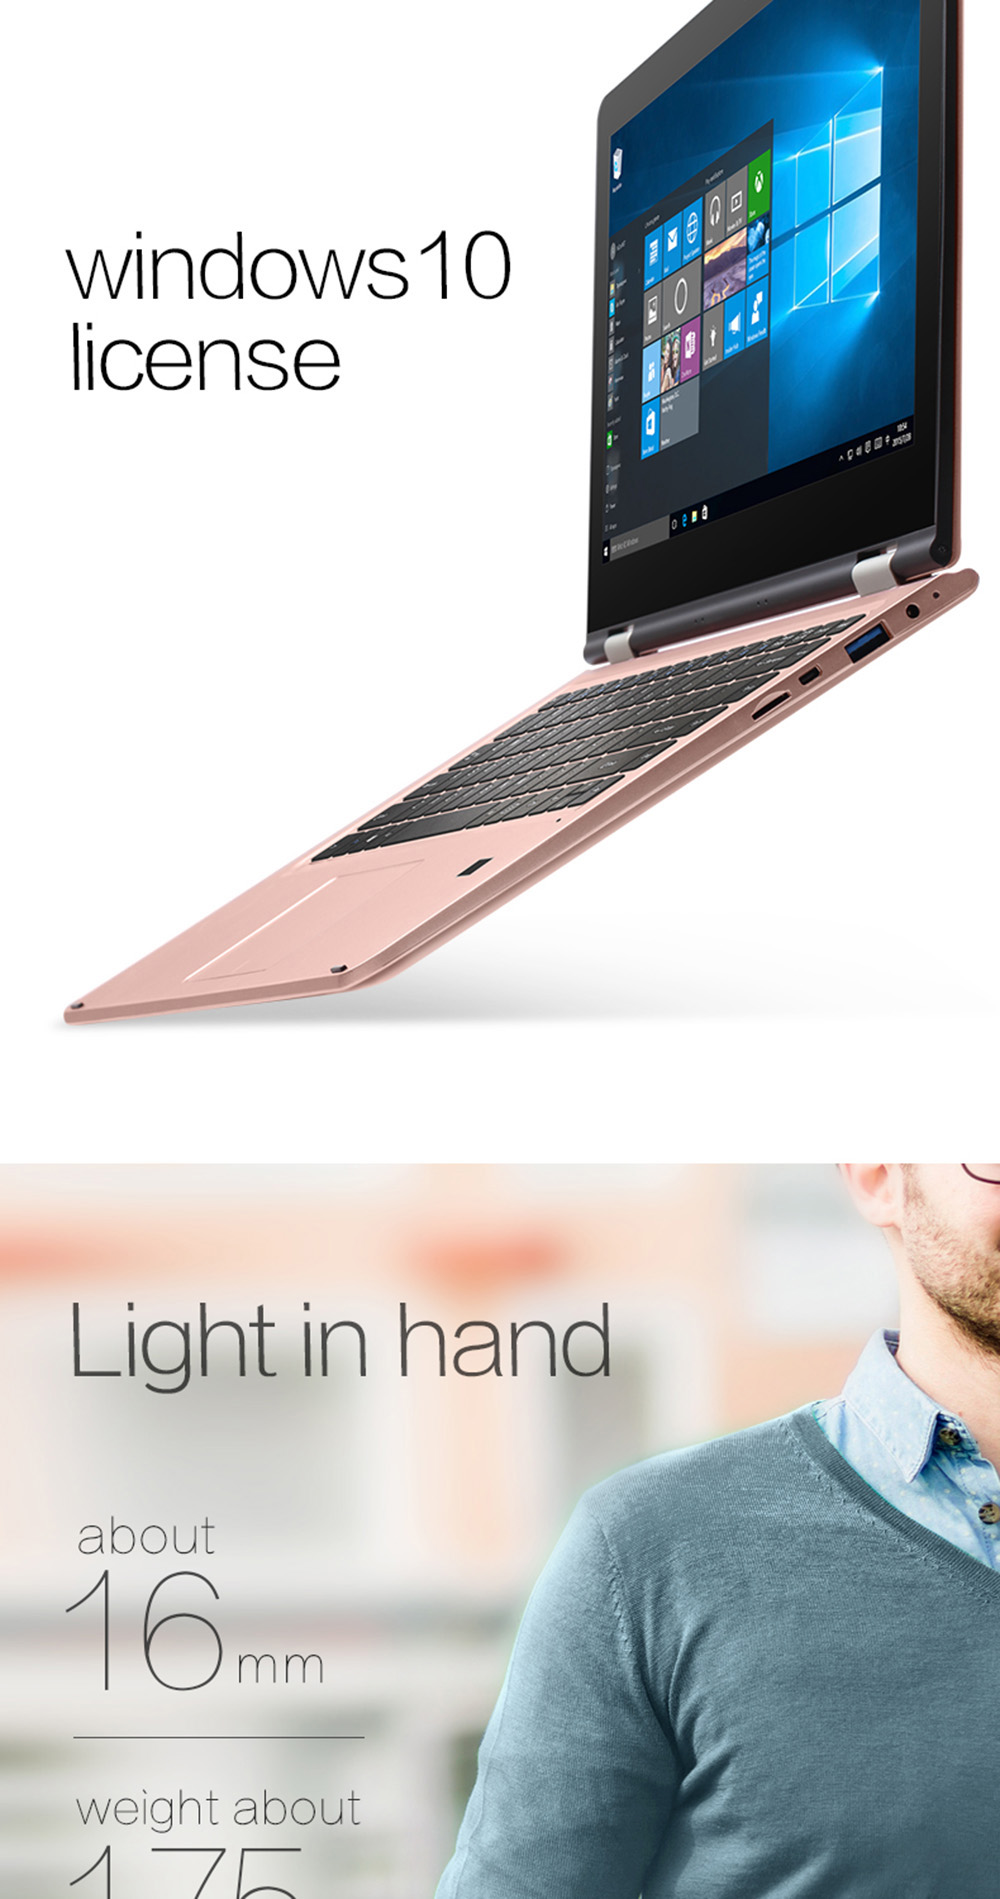 VOYO VBOOK V3 2 in 1 Yoga Notebook 13.3 inch FHD Screen Windows 10.1 6th Gen Intel Core i5-6200U Mobile Processor Dual Core 2.3GHz 4GB RAM 128GB SSD Fingerprint Sensor Dual WiFi HDMI